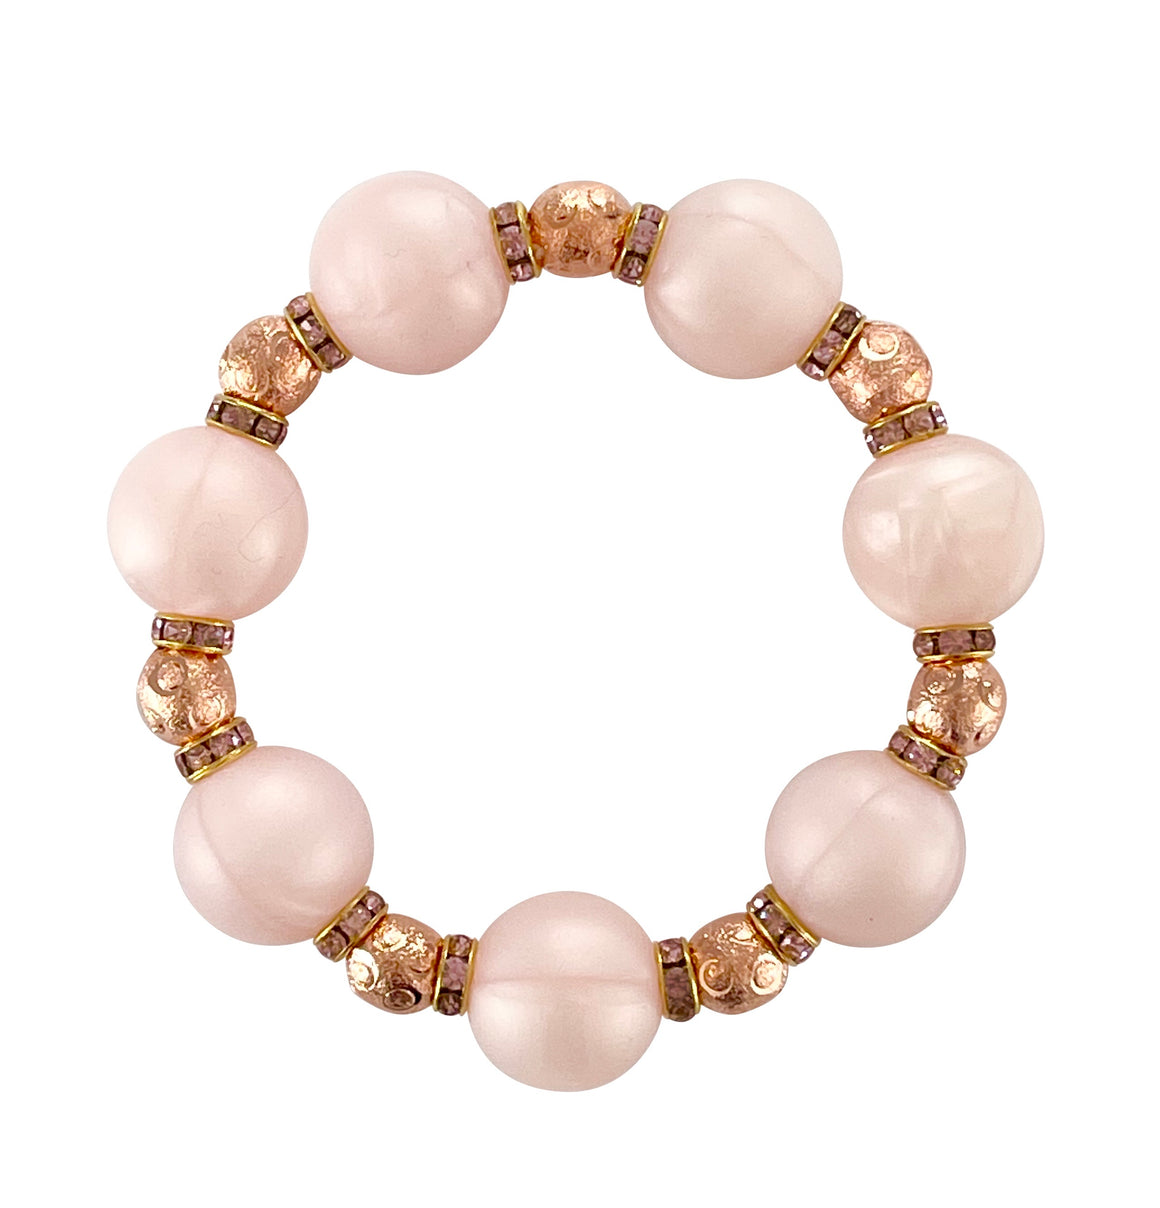 VALENTINES STATEMENT BRACELET IN LIGHT PINK AND ROSE GOLD